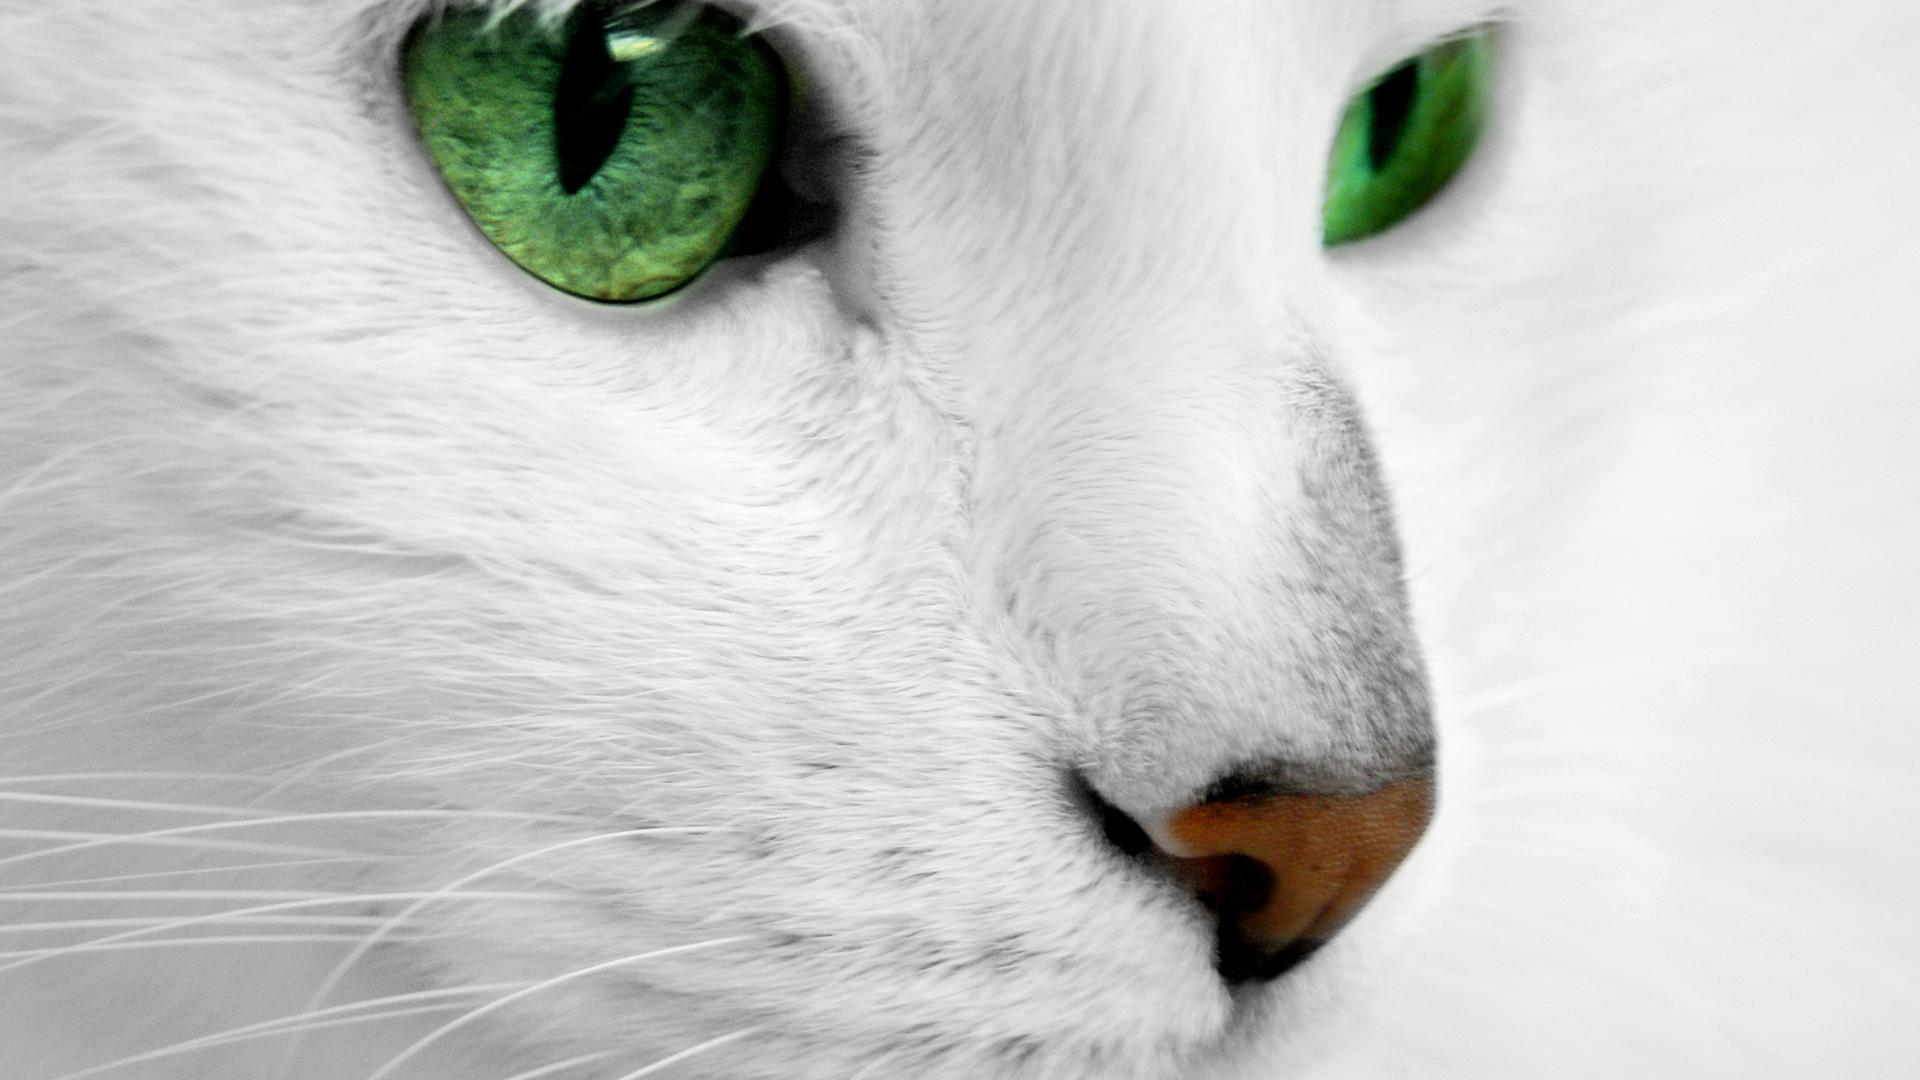 White Cat With Green Eyes Wallpaper Download 1920x1080